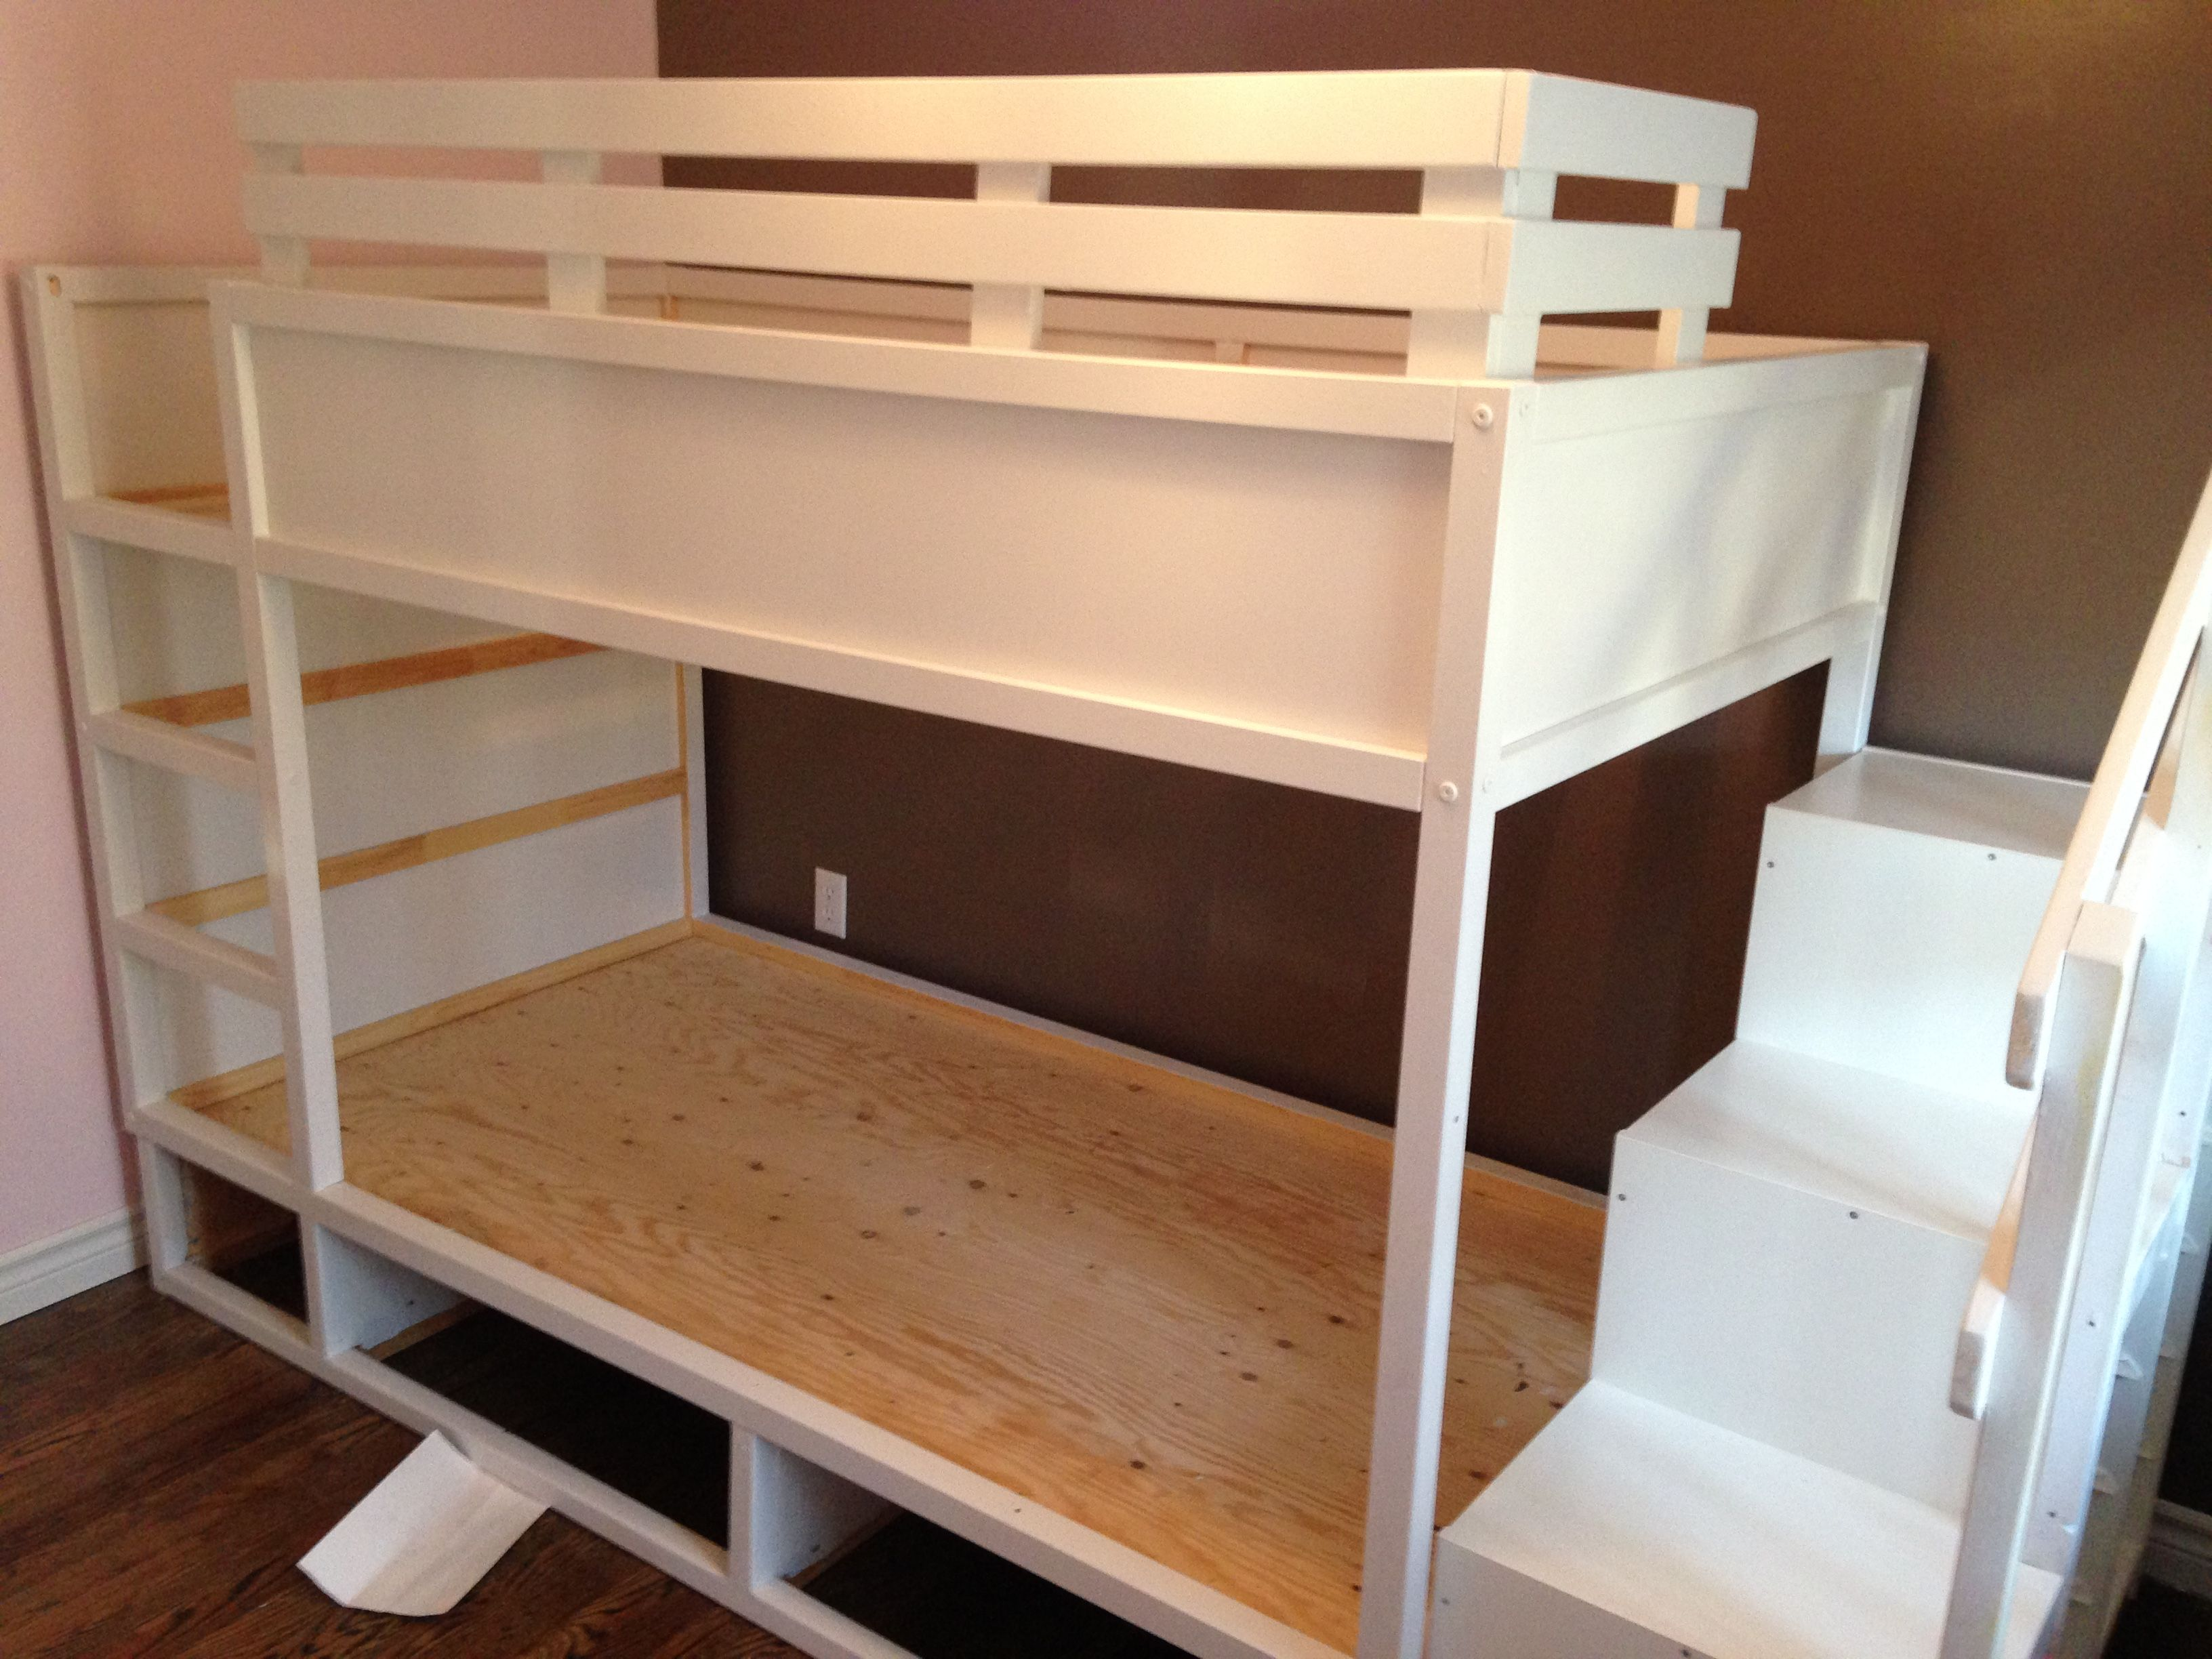 Ikea Kura Lifted And Made Into A Bunk Bed Plus Room For Under Bed